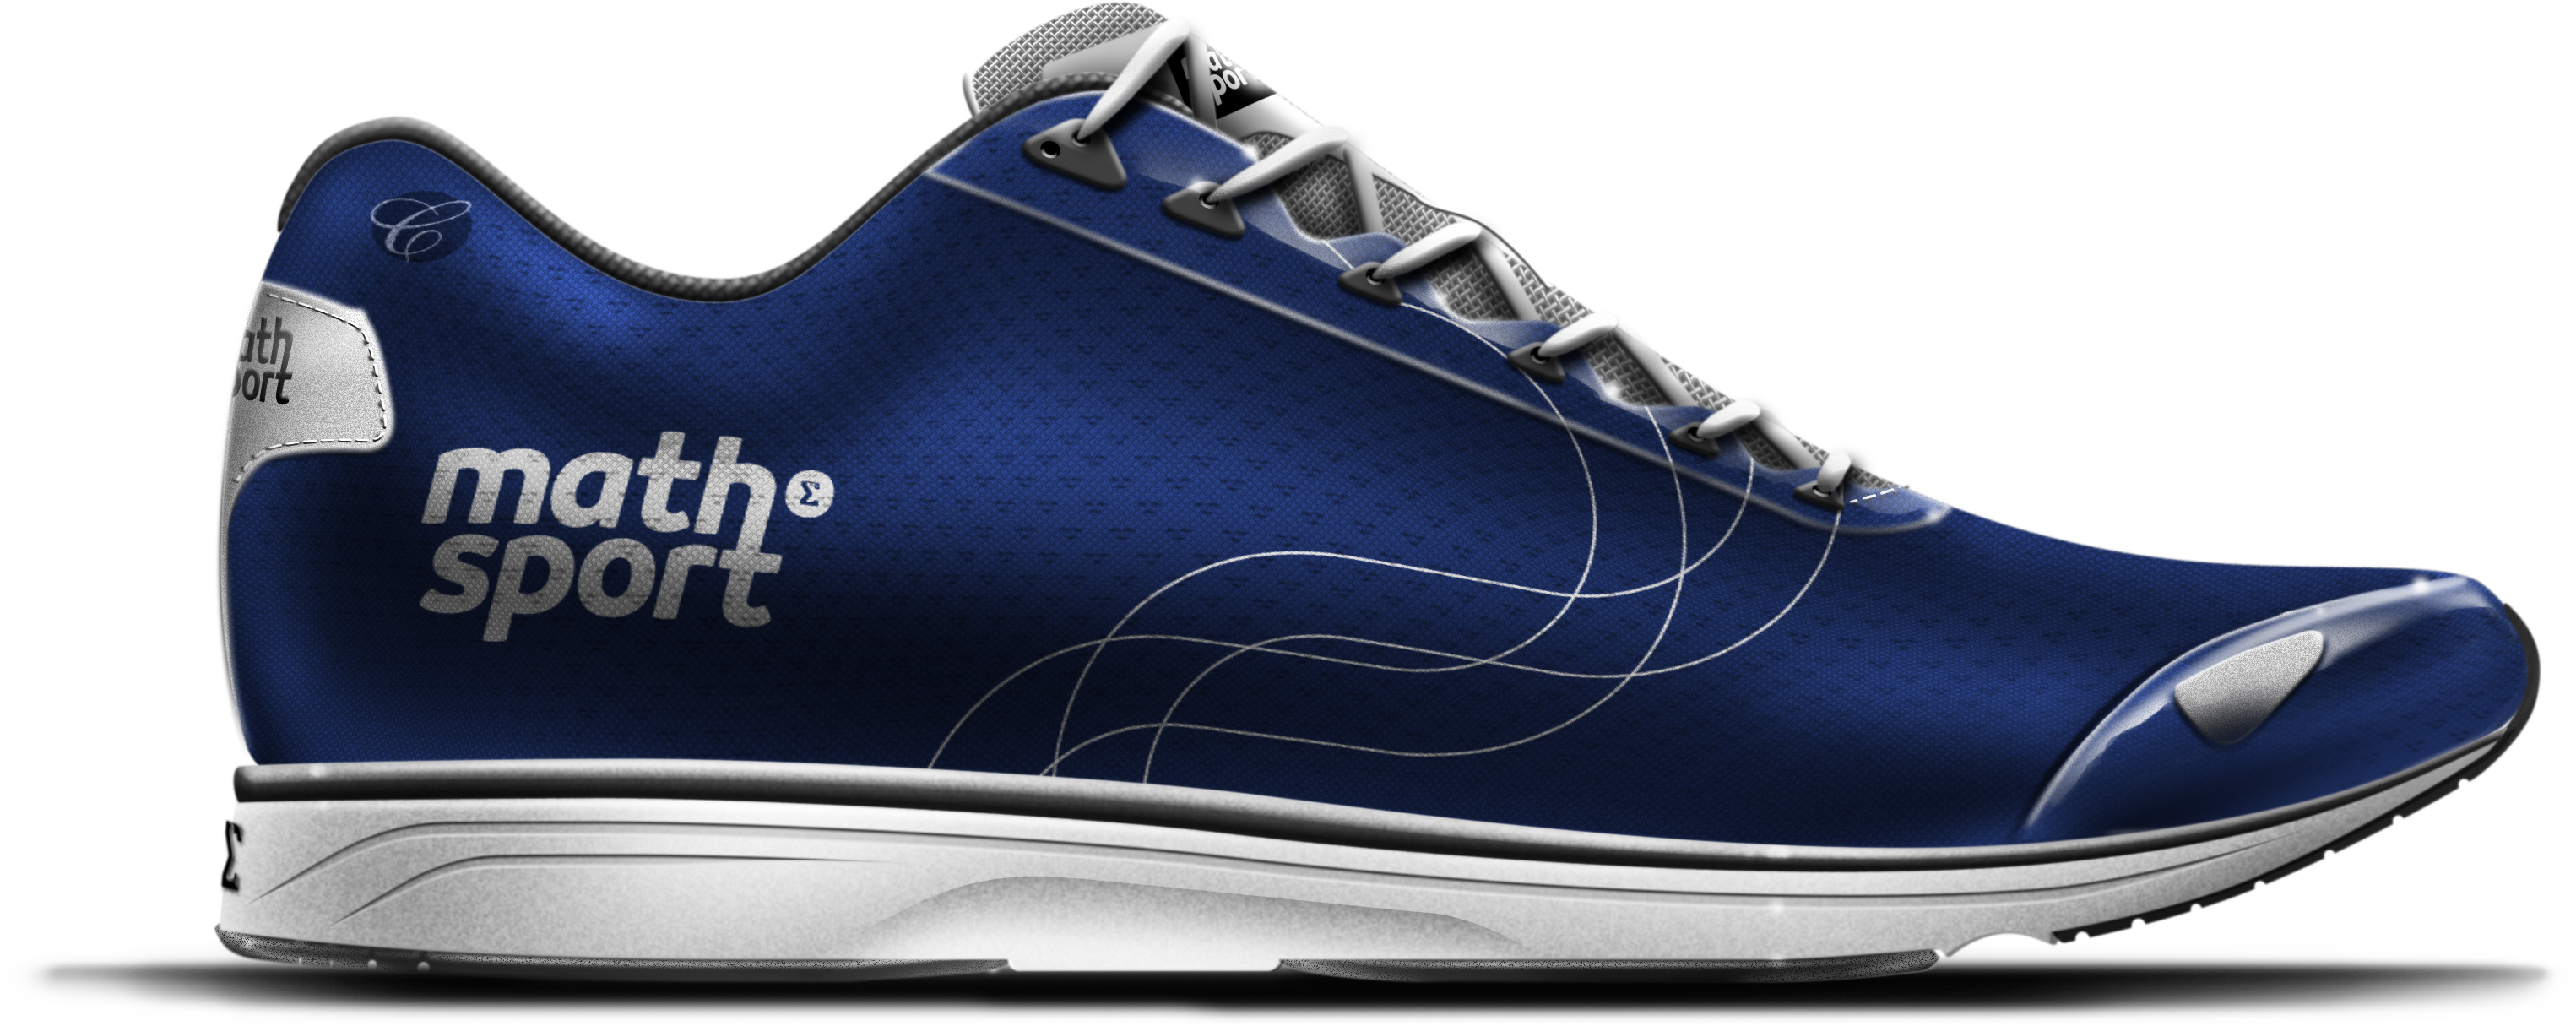 gen3 - navy - 10mm - lite trainer